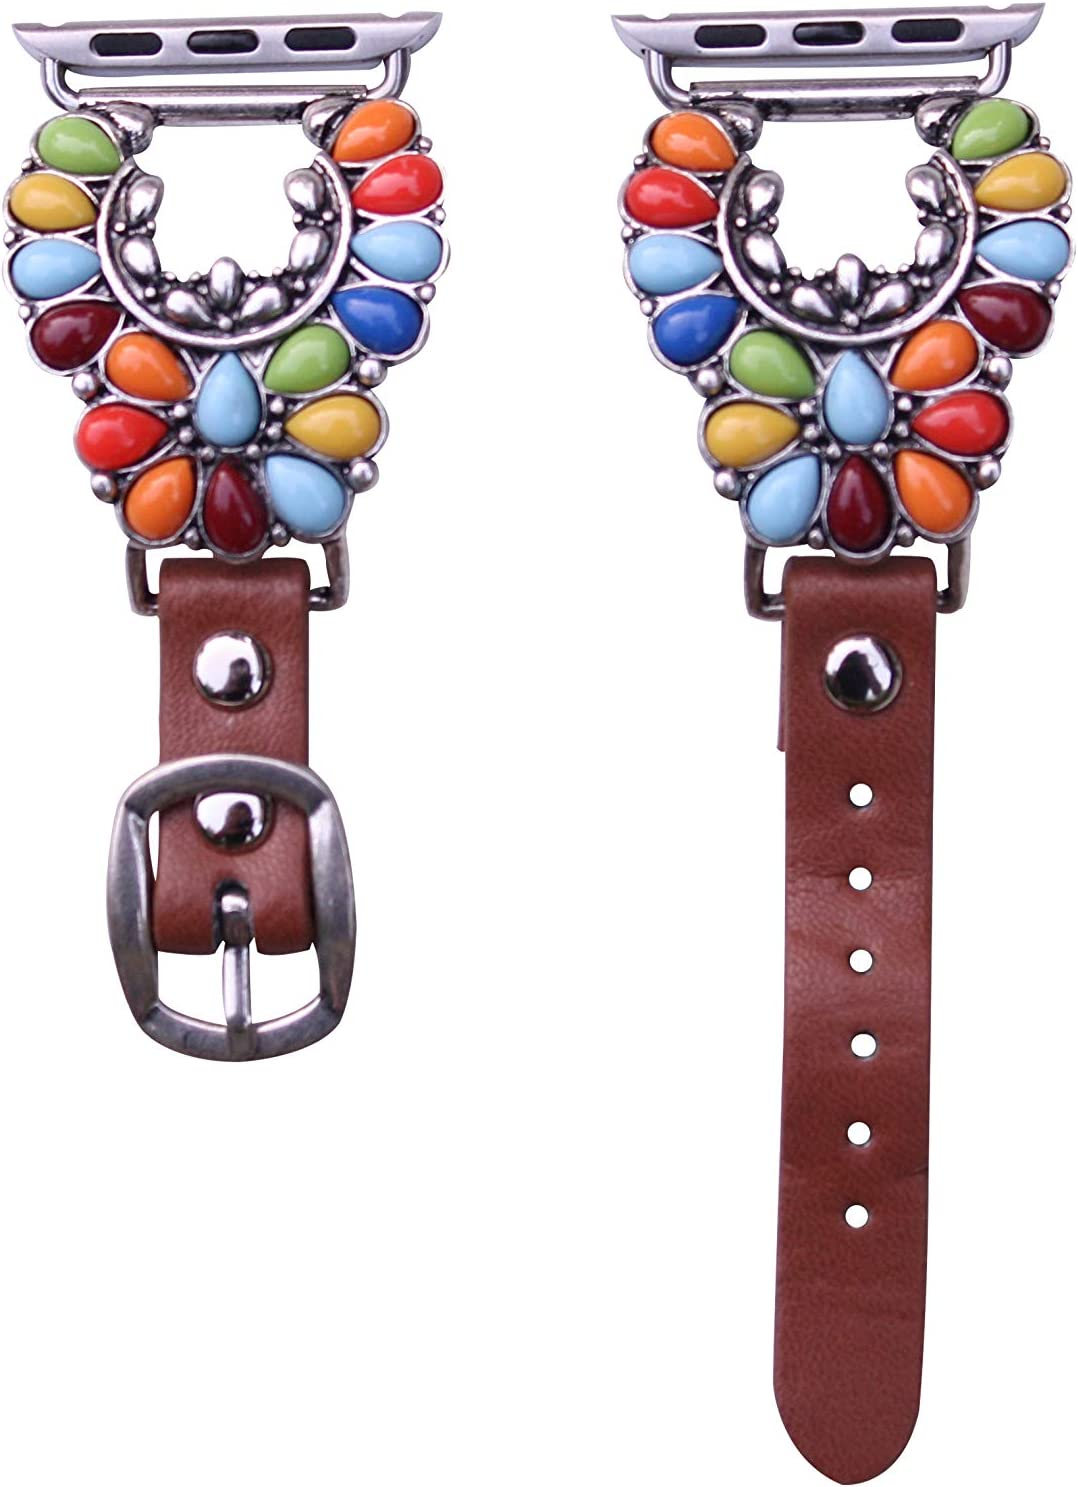 40mm/38mm Compatible for Apple Watch, Delicate Western Multicolored Fanwise Flower Watch Band No. 25M